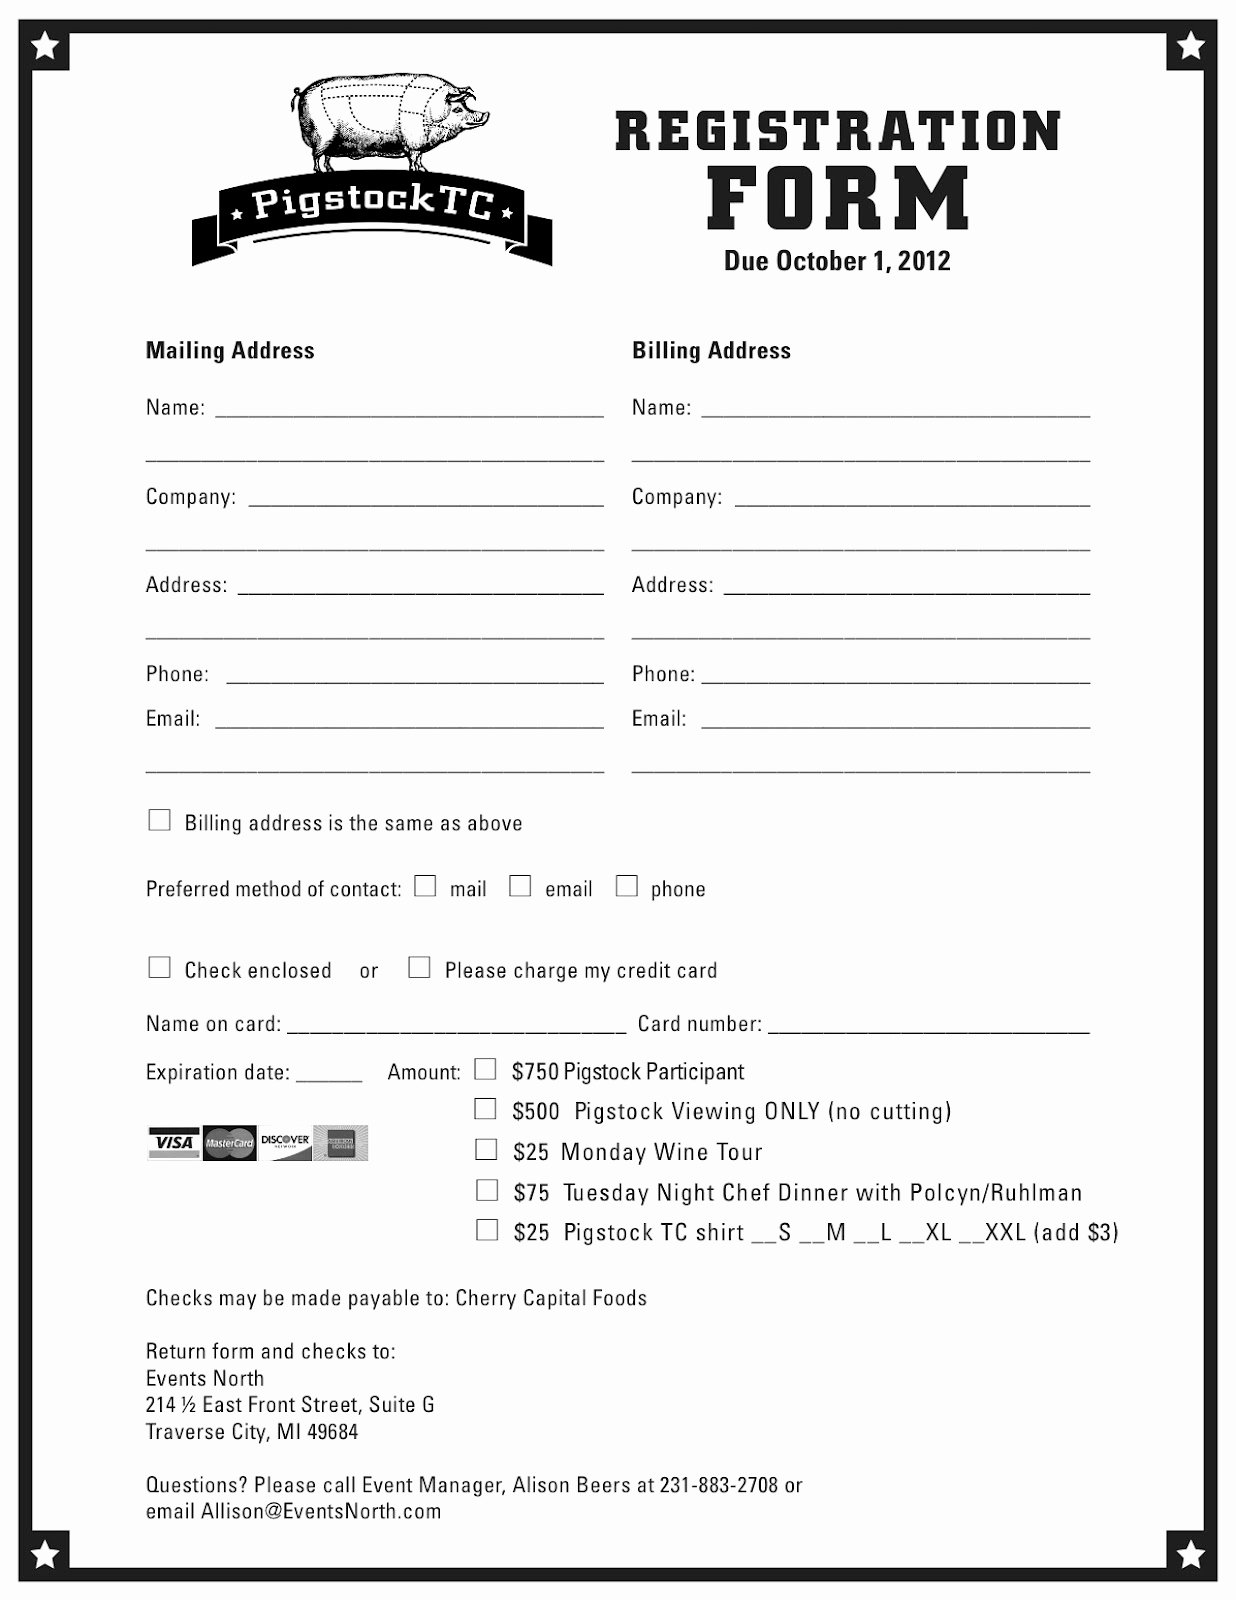 Registration form Template Word Free Inspirational Pigstocktc 2012 Pigstocktc Program Schedule & Registration